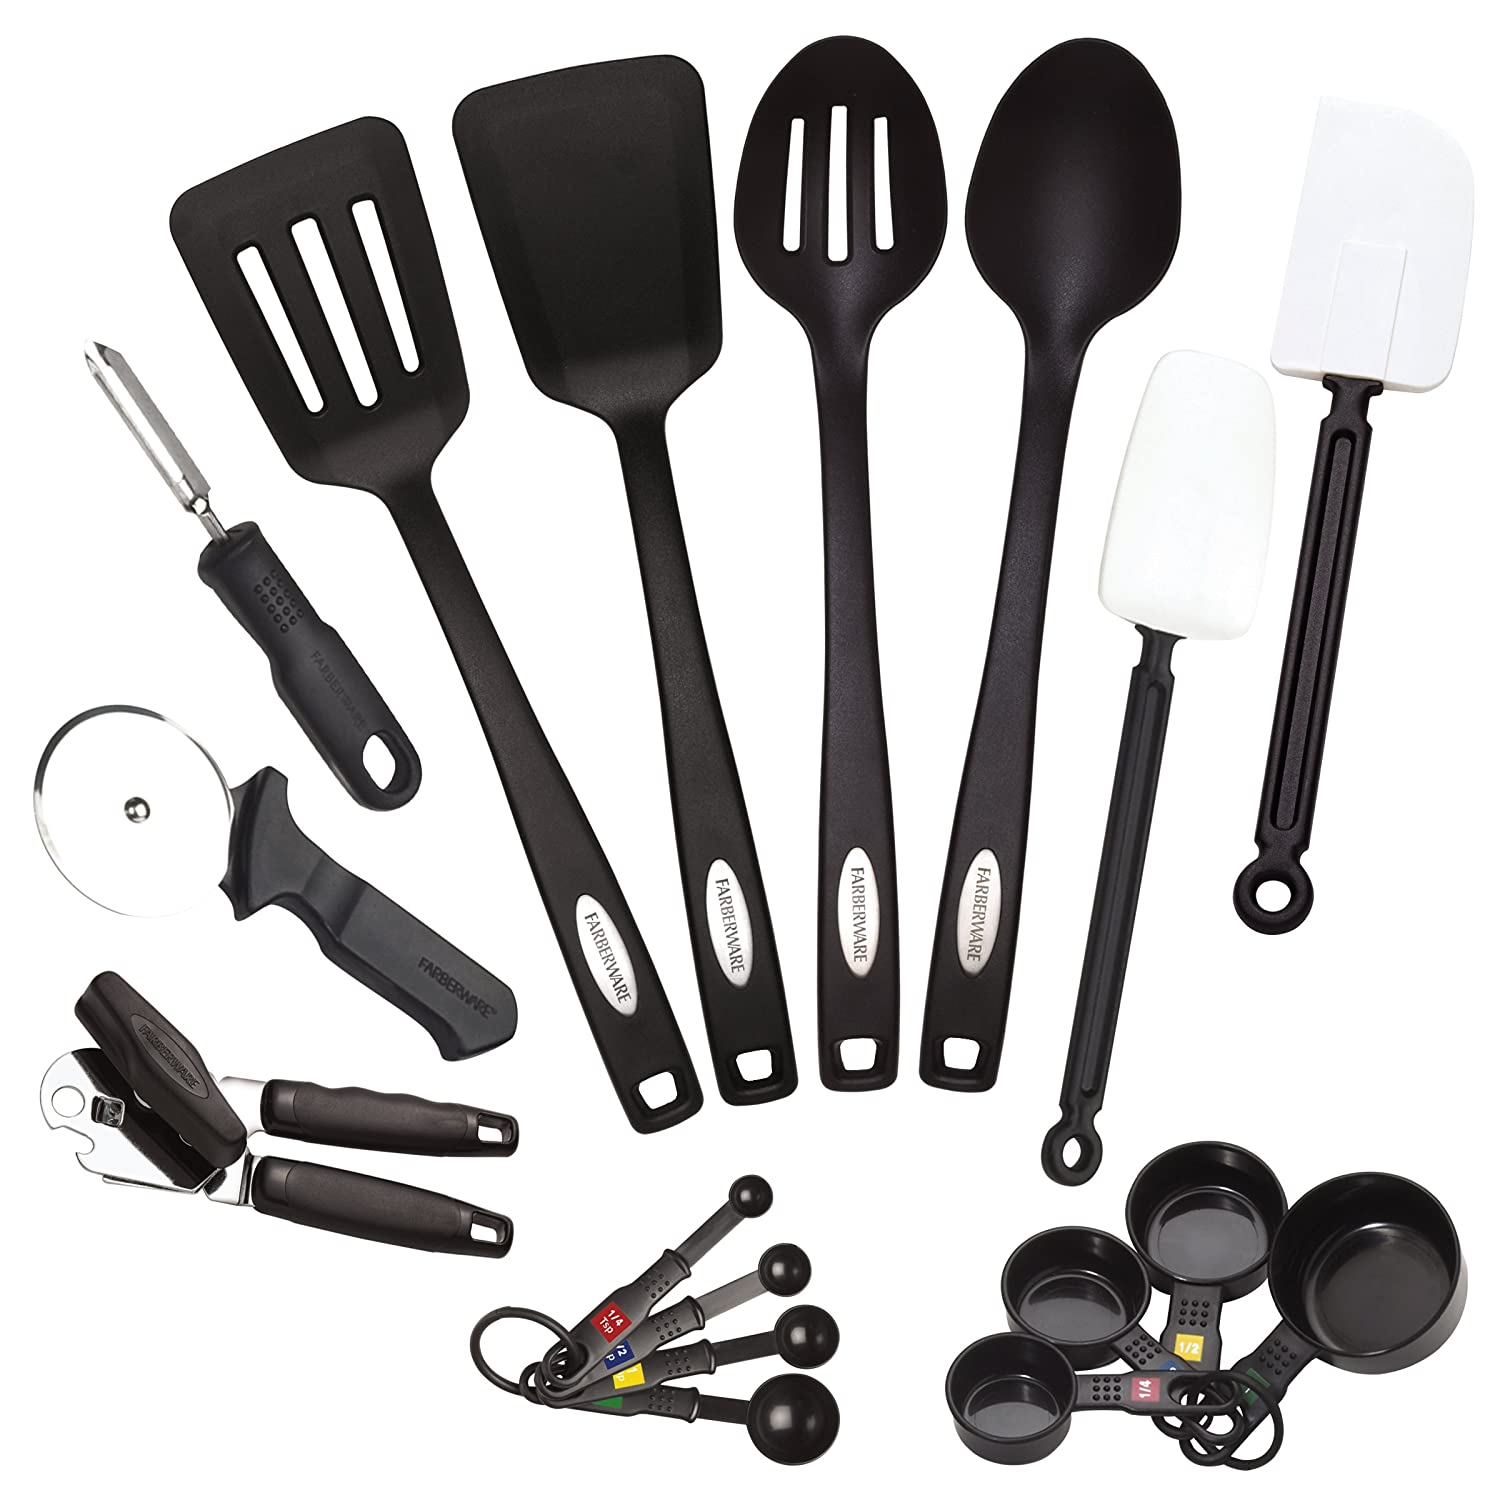 Farberware Classic Kitchen Tools